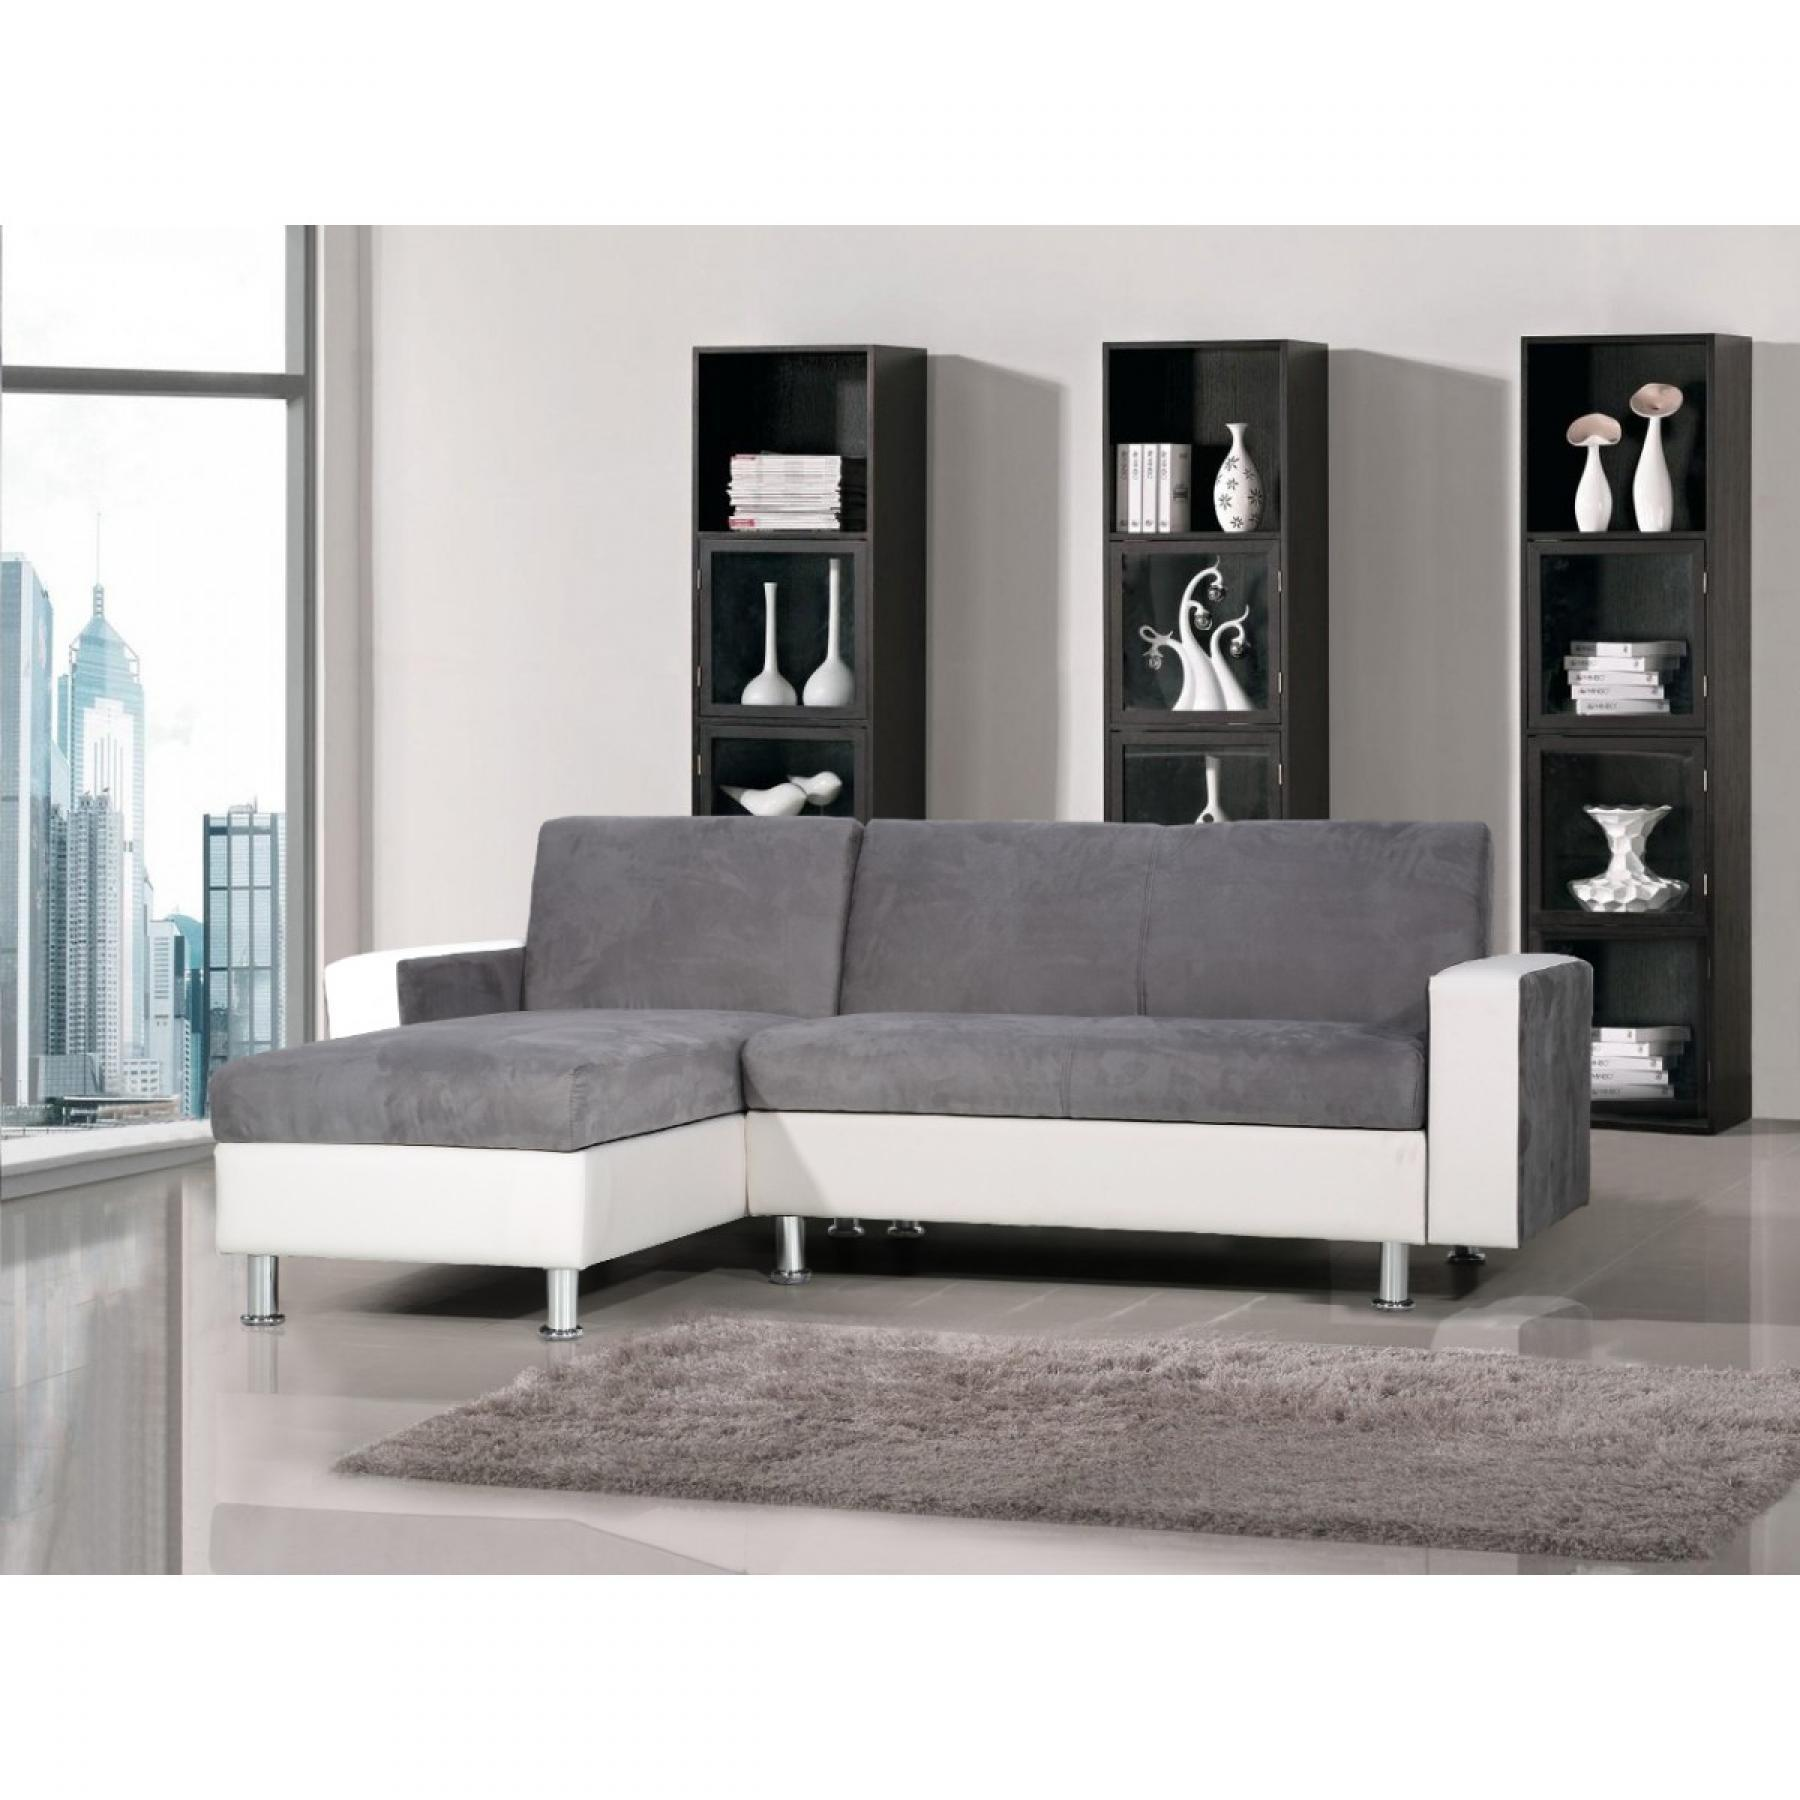 photos canap d 39 angle gris et blanc pas cher. Black Bedroom Furniture Sets. Home Design Ideas